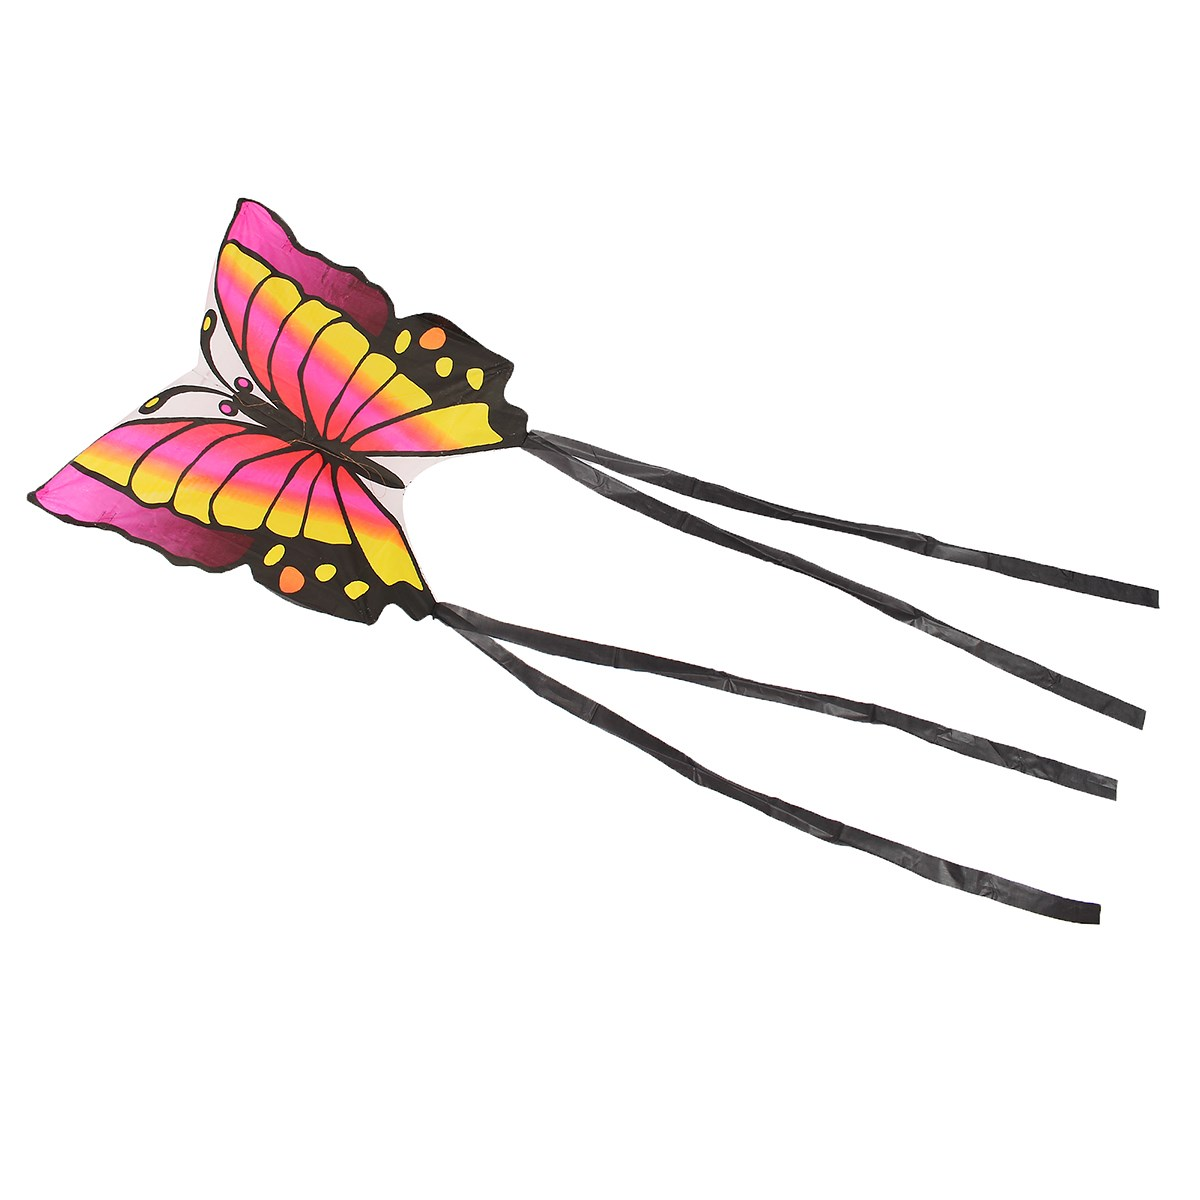 Childrens-Butterfly-Kite-Easy-to-Fly-Single-Line-Kite-Tail-15M-Outdoor-Funny-Sports-Toy-Gift-Funny-Sport-Outdoor-Playing-Toys-2